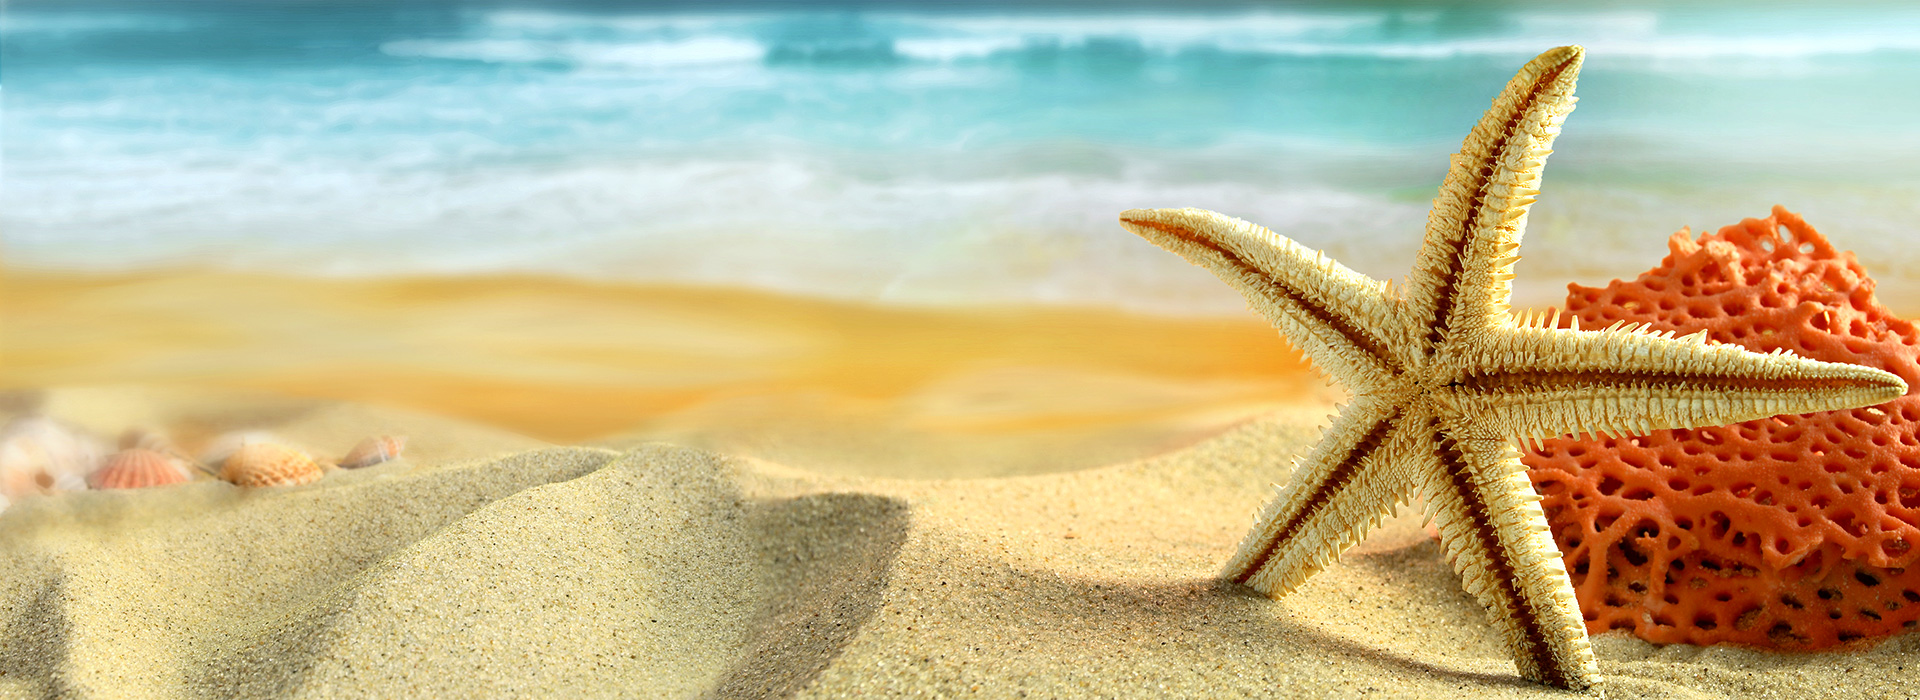 beach-sand-starfish-shells